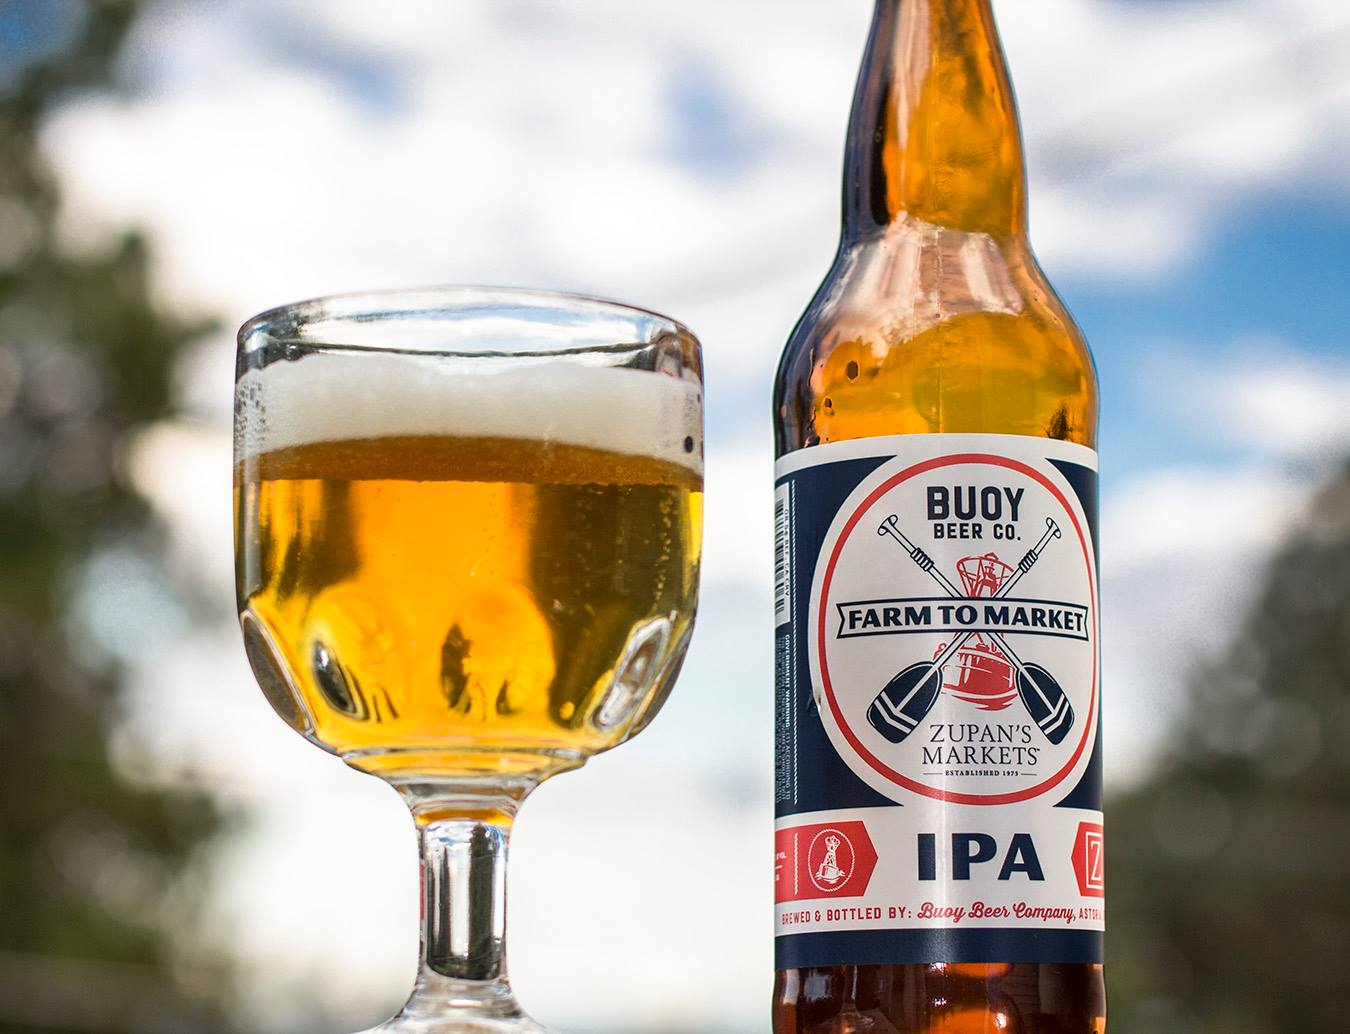 Zupan's Markets have collaborated on its next Farm To Market beer with Buoy Beer Co. on an exclusive IPA. (image courtesy of Zupan's Markets)